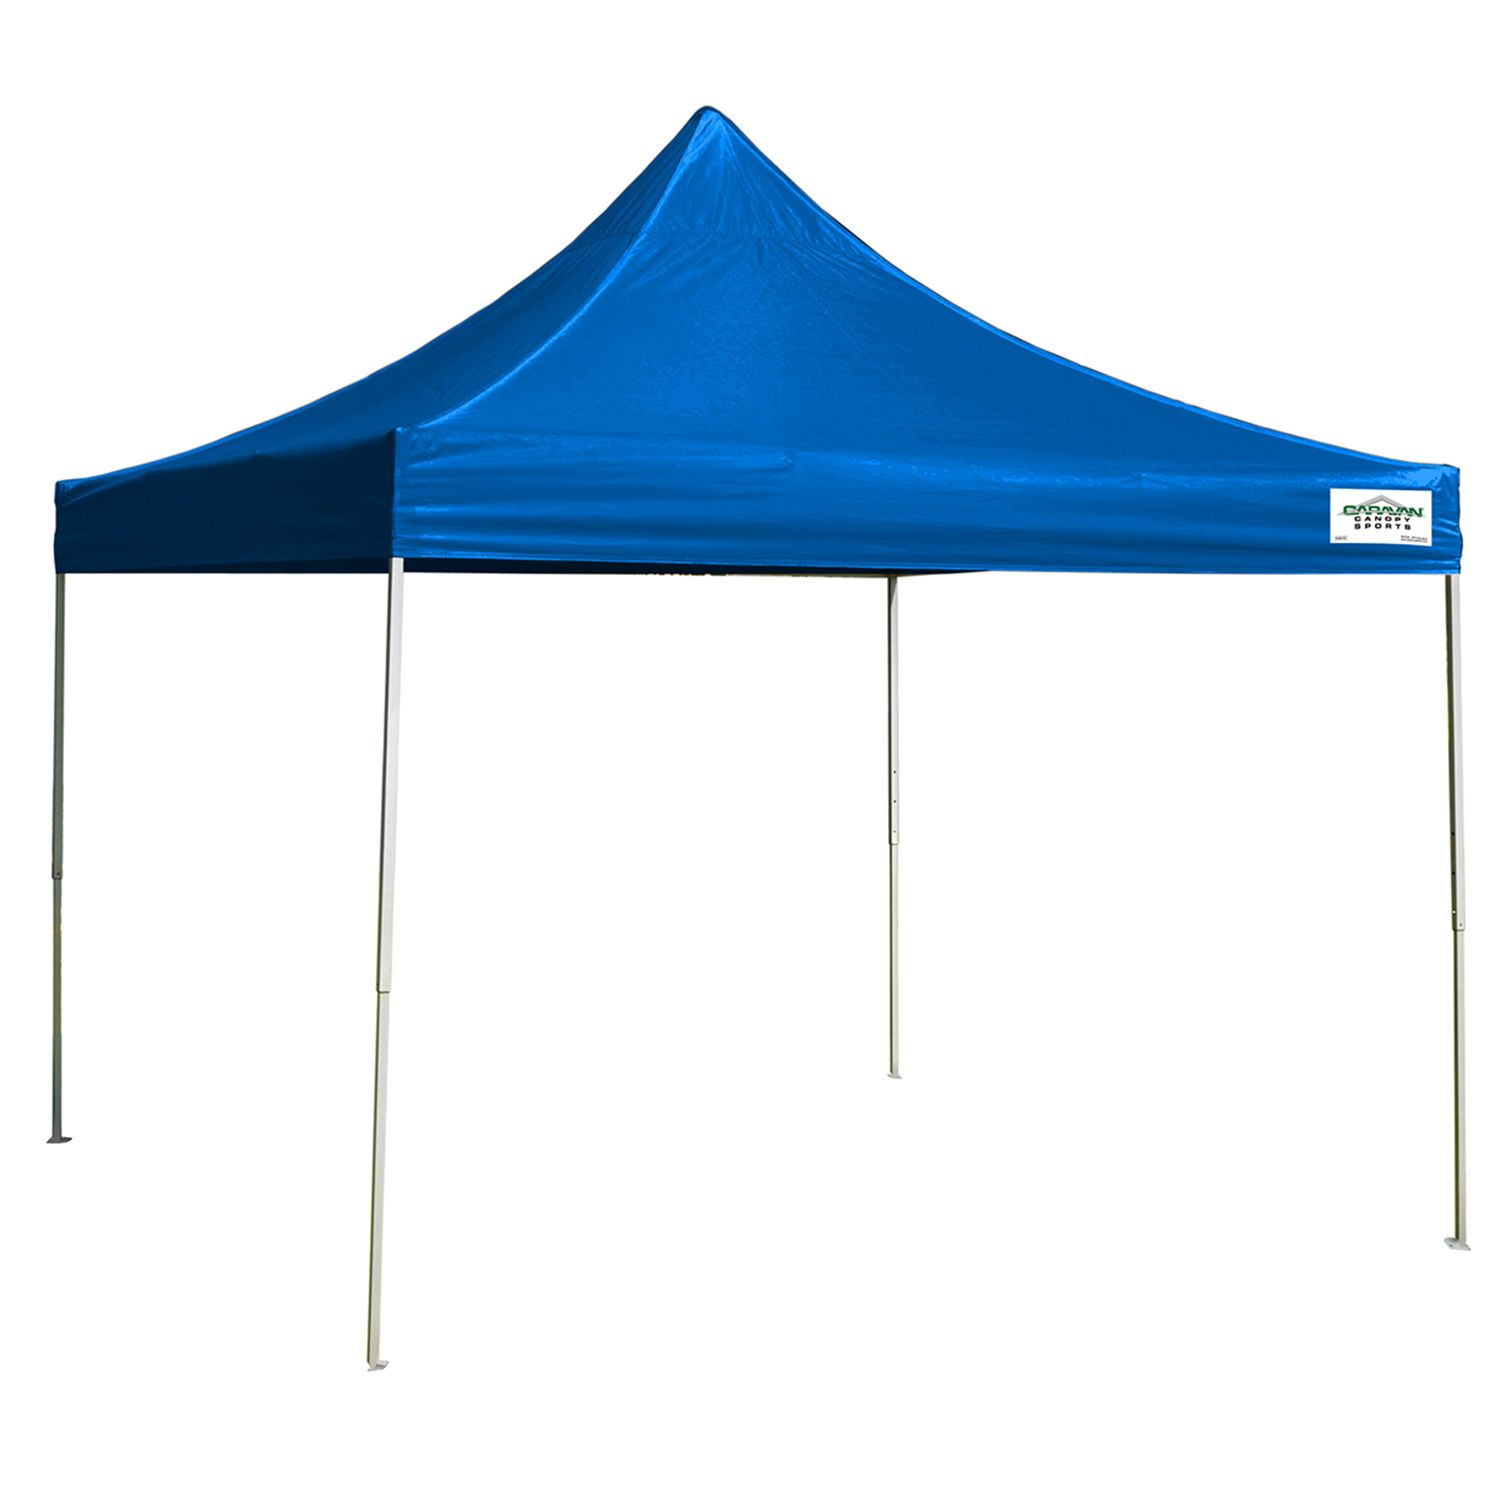 Free Event Tent Clipart Image.